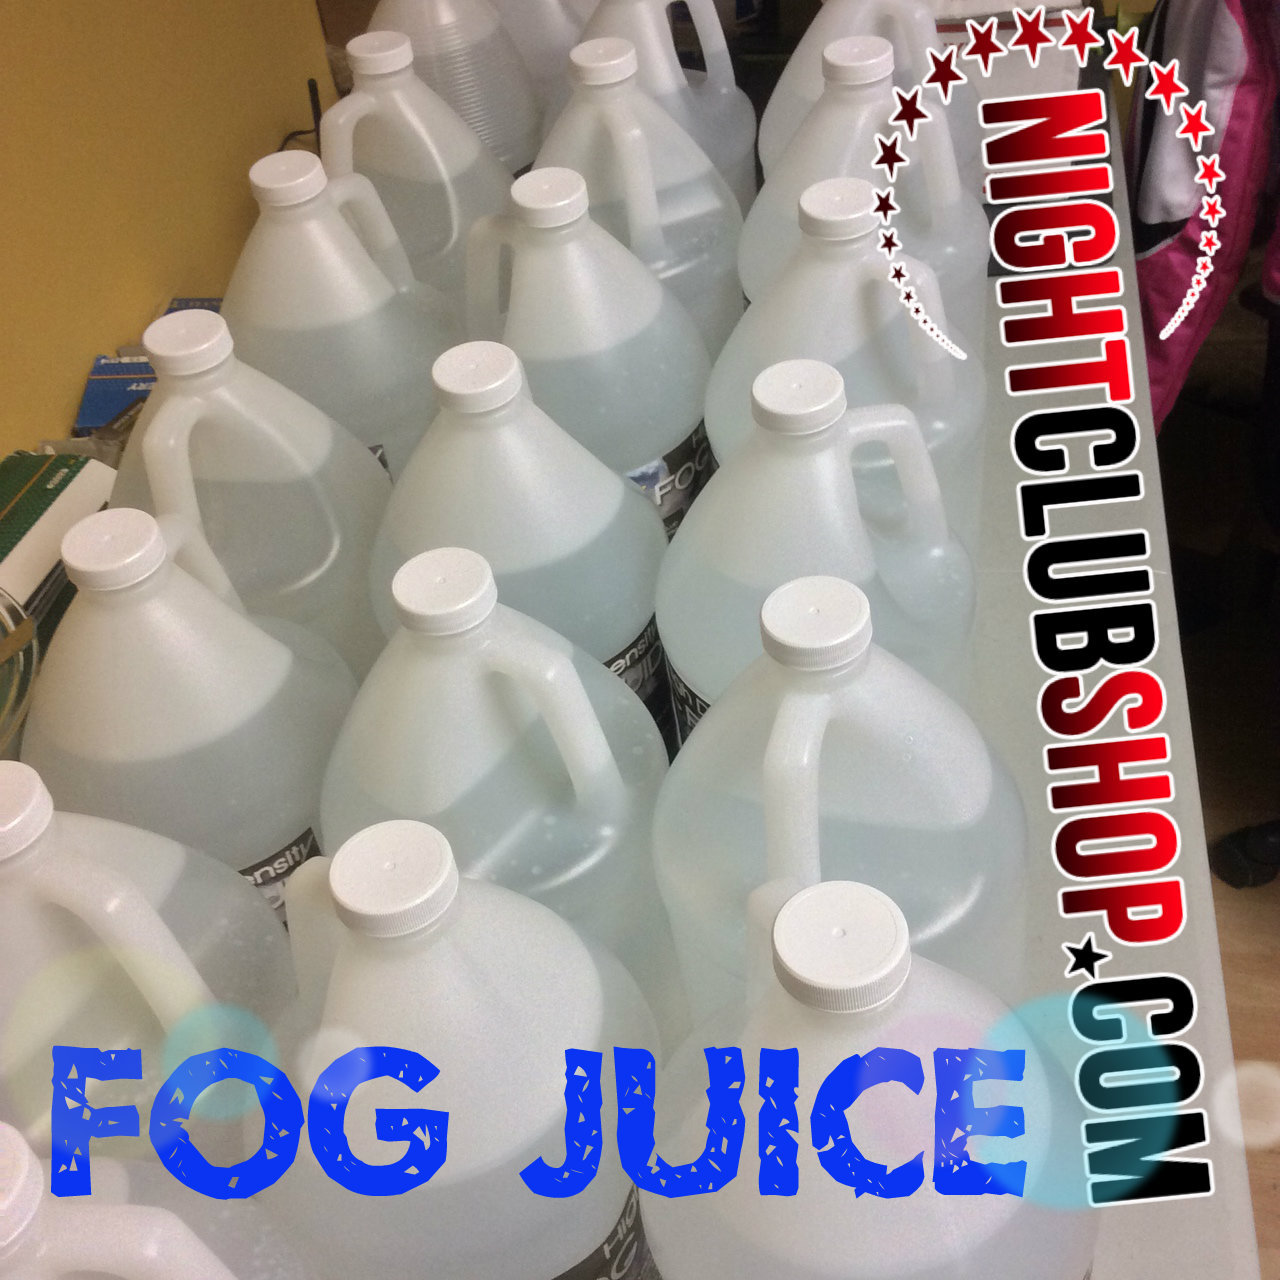 bubble-juice-fog-effect-liquid-1-gallon-container-refill-98810.1477114905.1280.1280.jpg